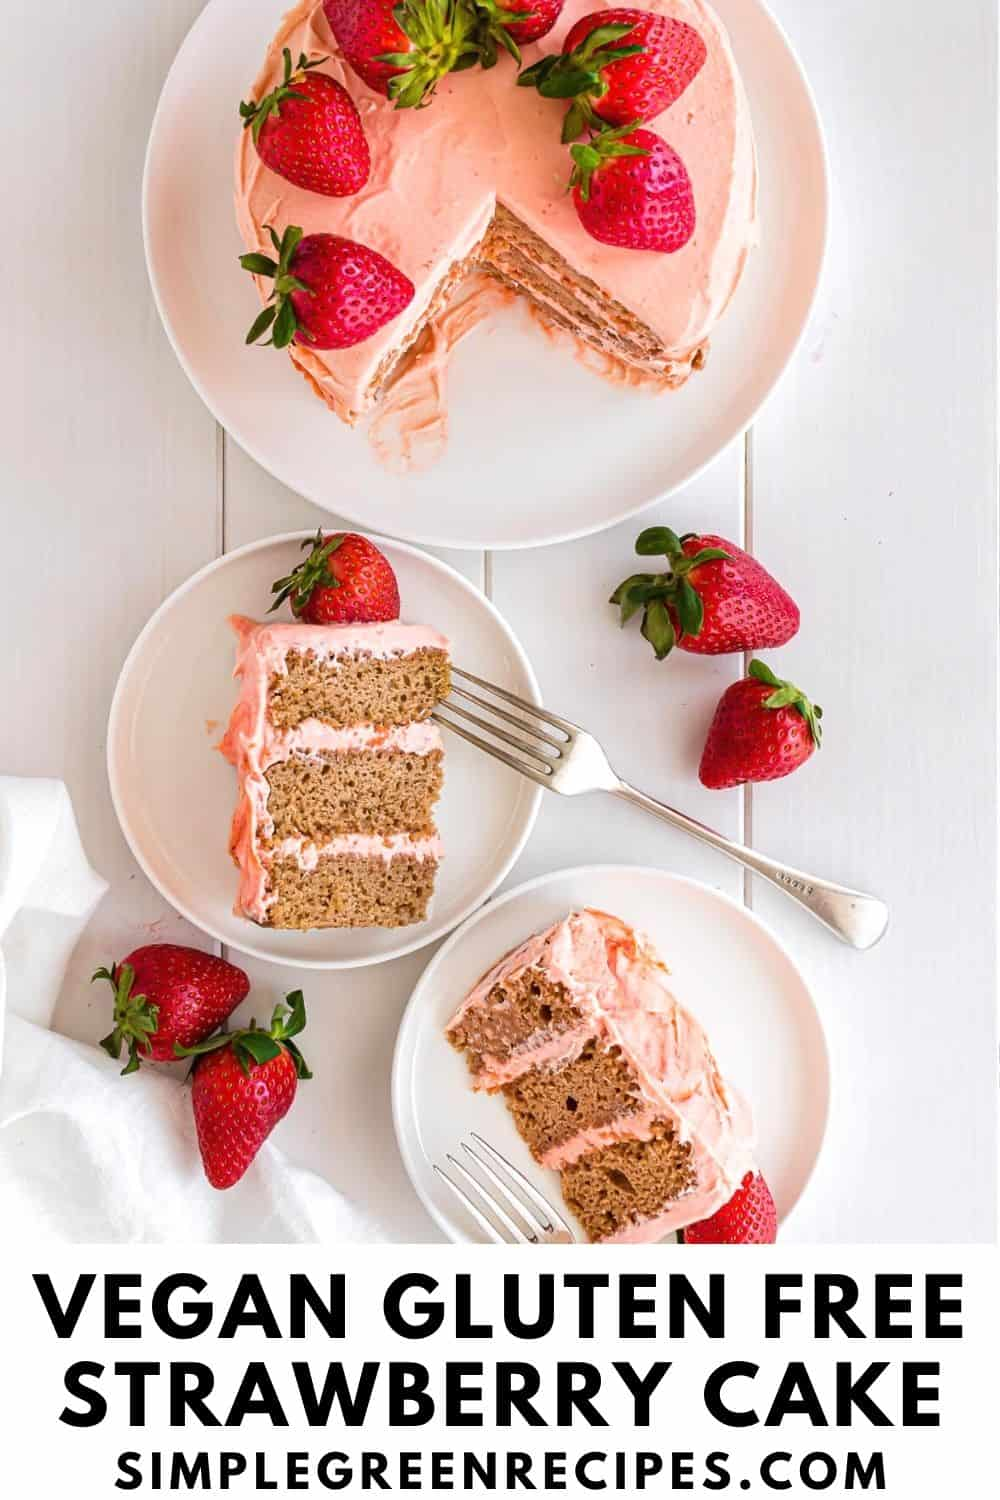 Cut Strawberry cake on a white plate, next to two slices cake on white plates.